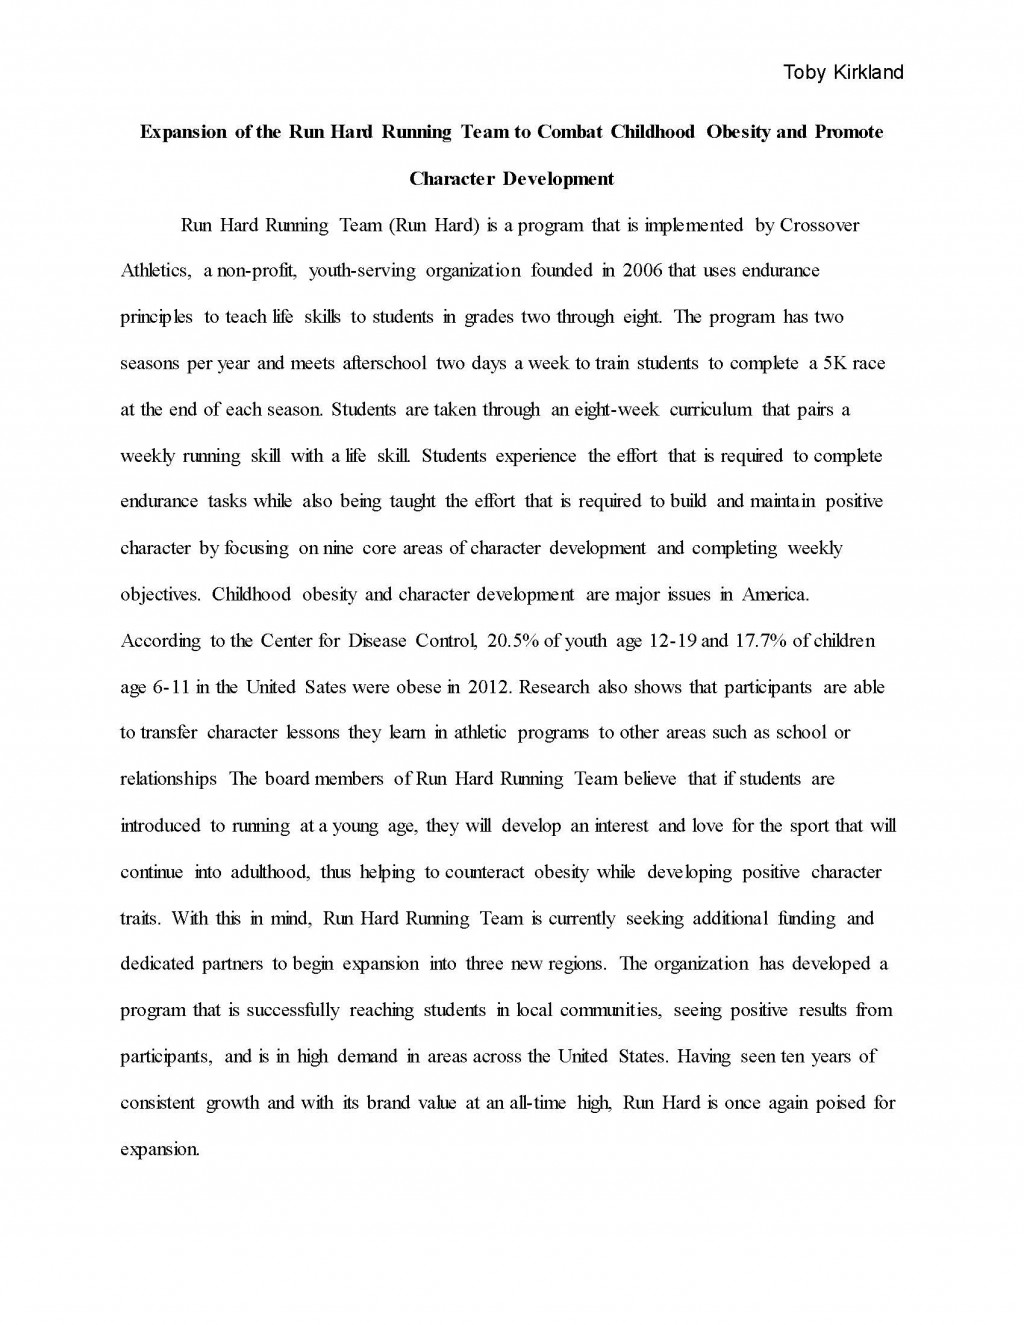 001 Obesity Essay Toby Kirkland Final Grant Proposal Page 01 Wondrous Paper Topics Childhood Hook Examples Large